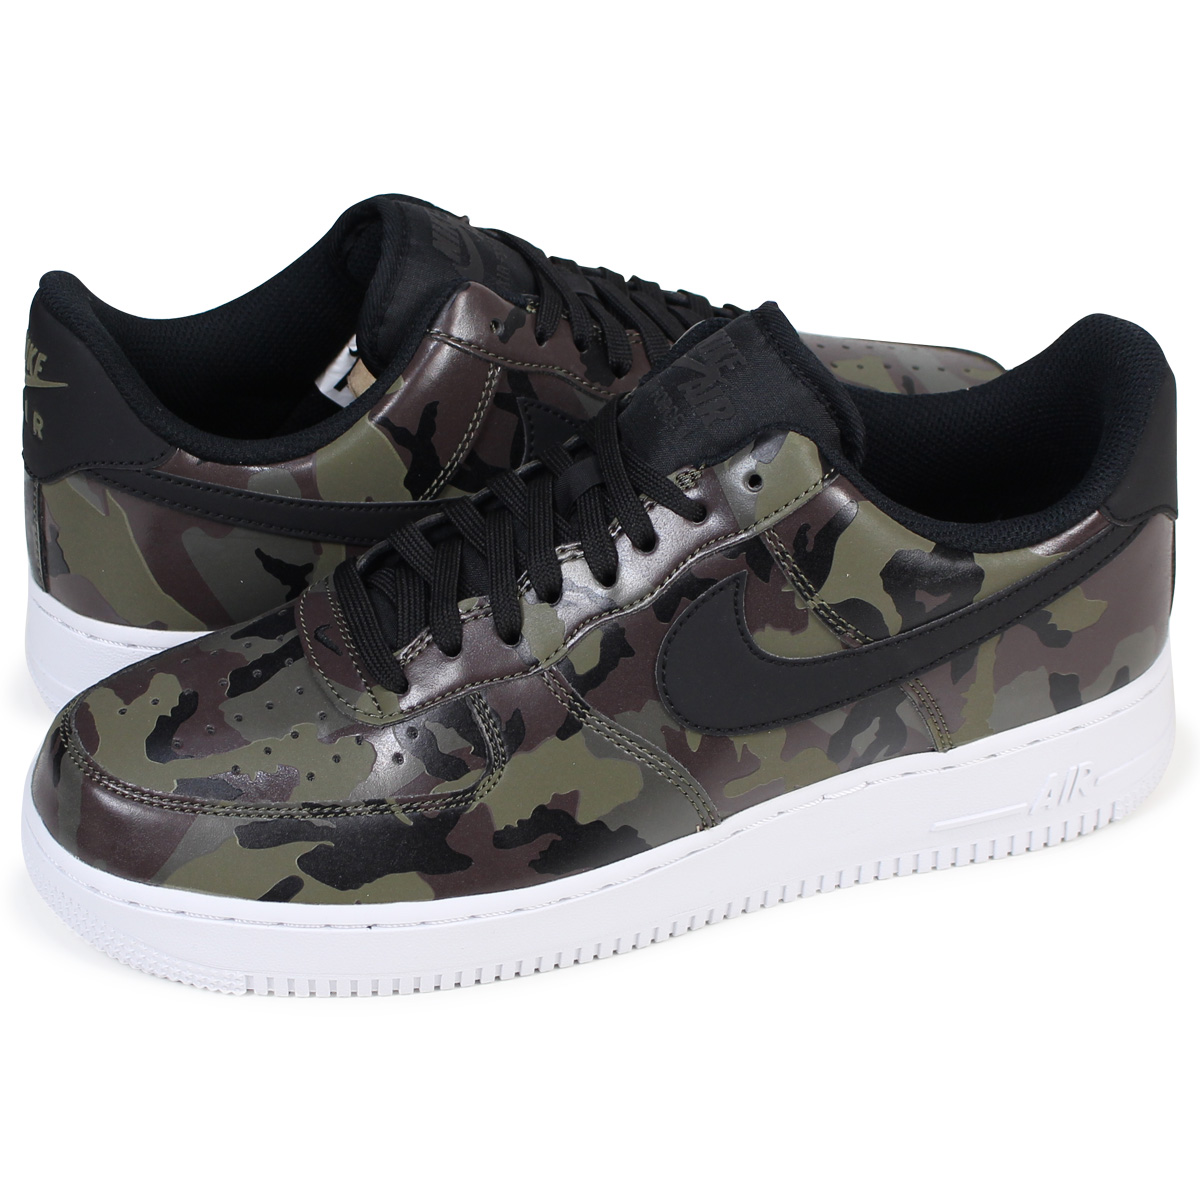 An NIKE AIR FORCE Nike air force 1 LV8 sneakers 1 823,511-201 men's shoes  duck [load planned Shinnyu load in reservation product 12/15 containing]  [1712]